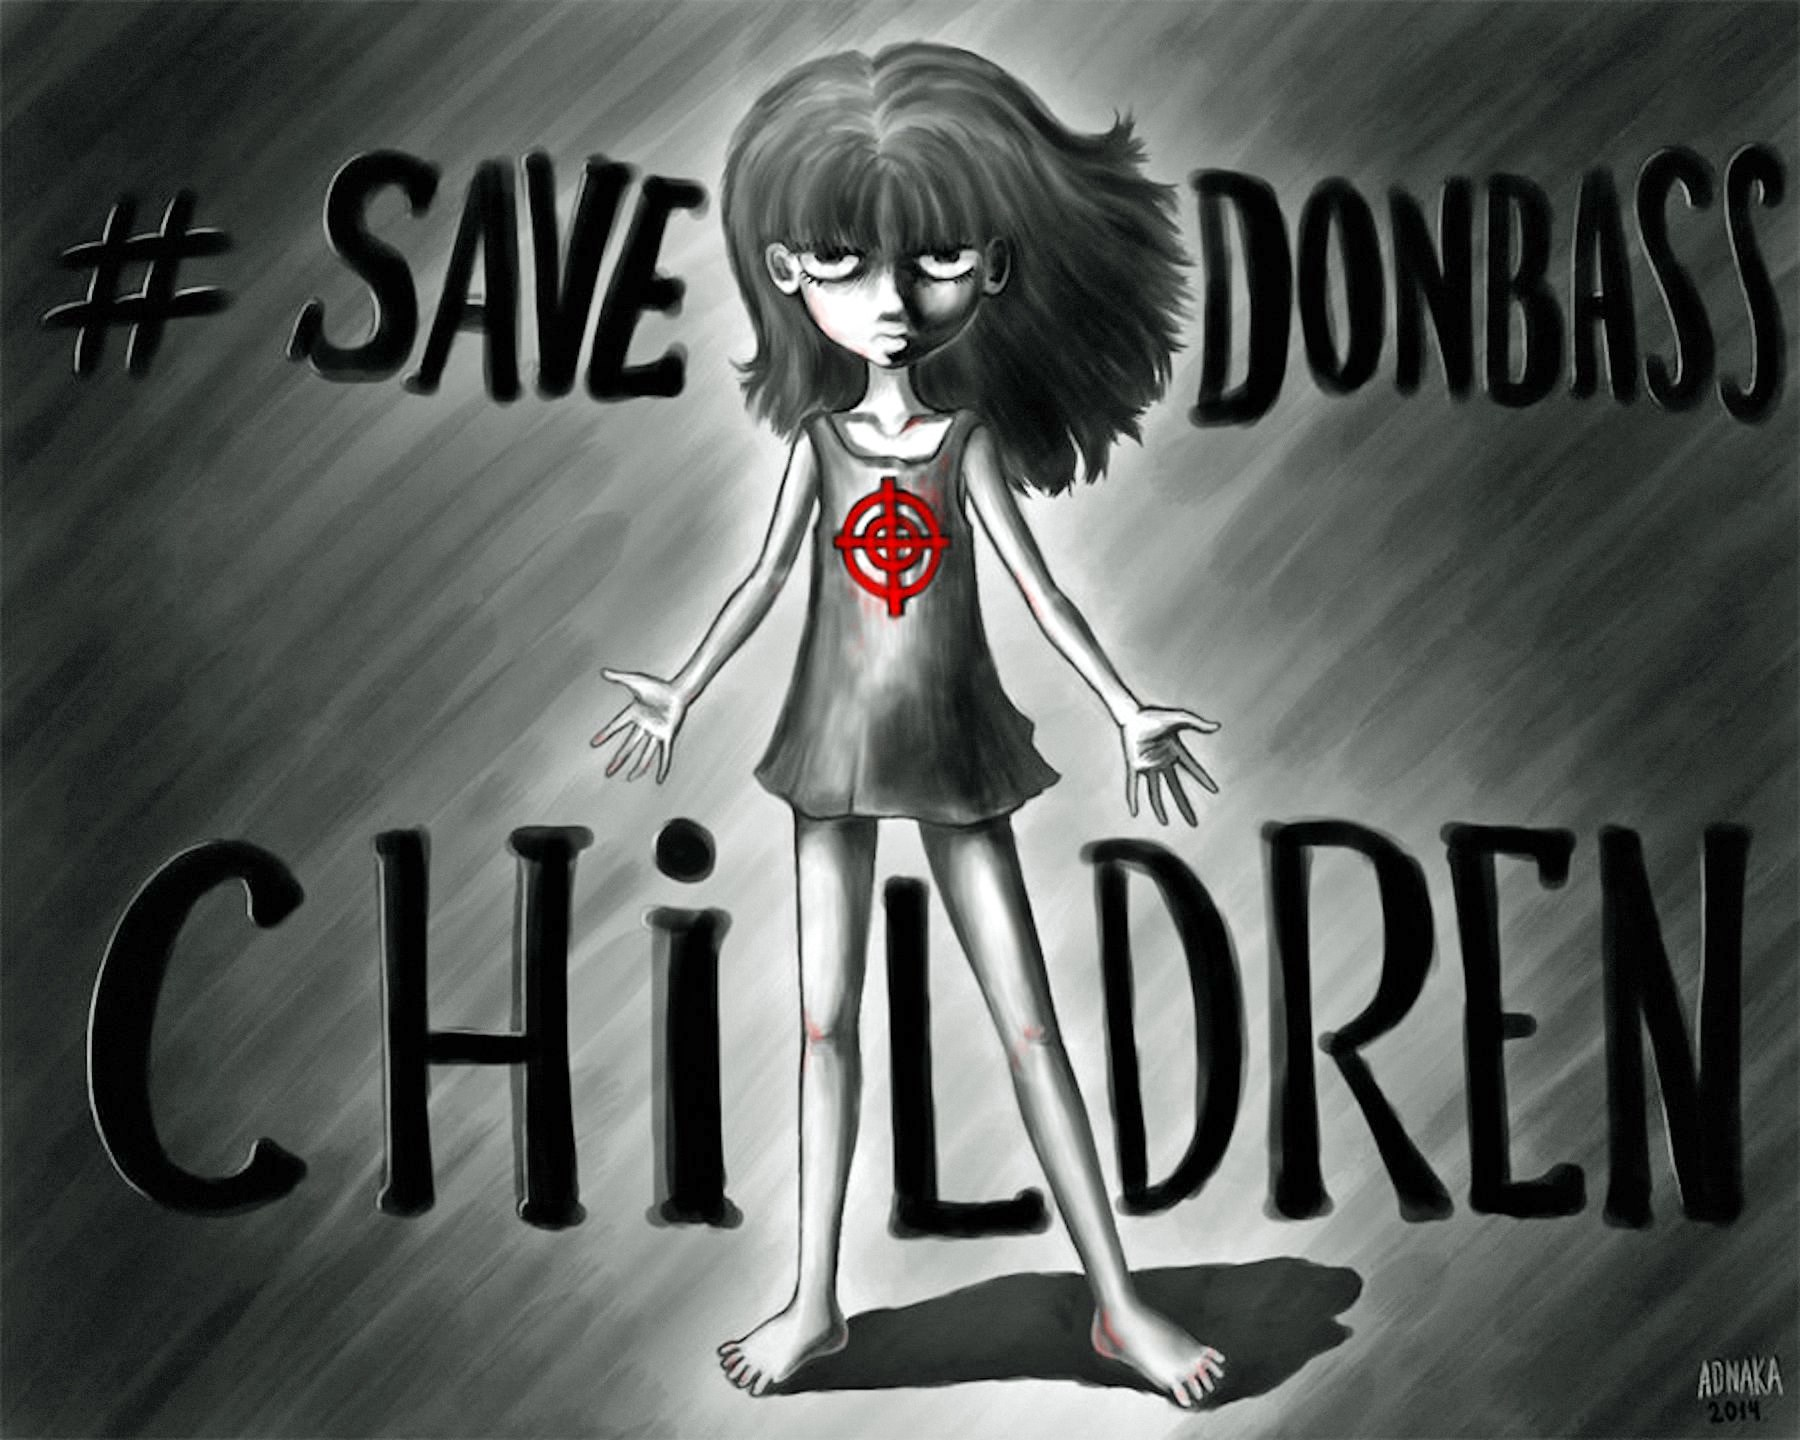 00 ADNAKA Save Dobass Children 2014